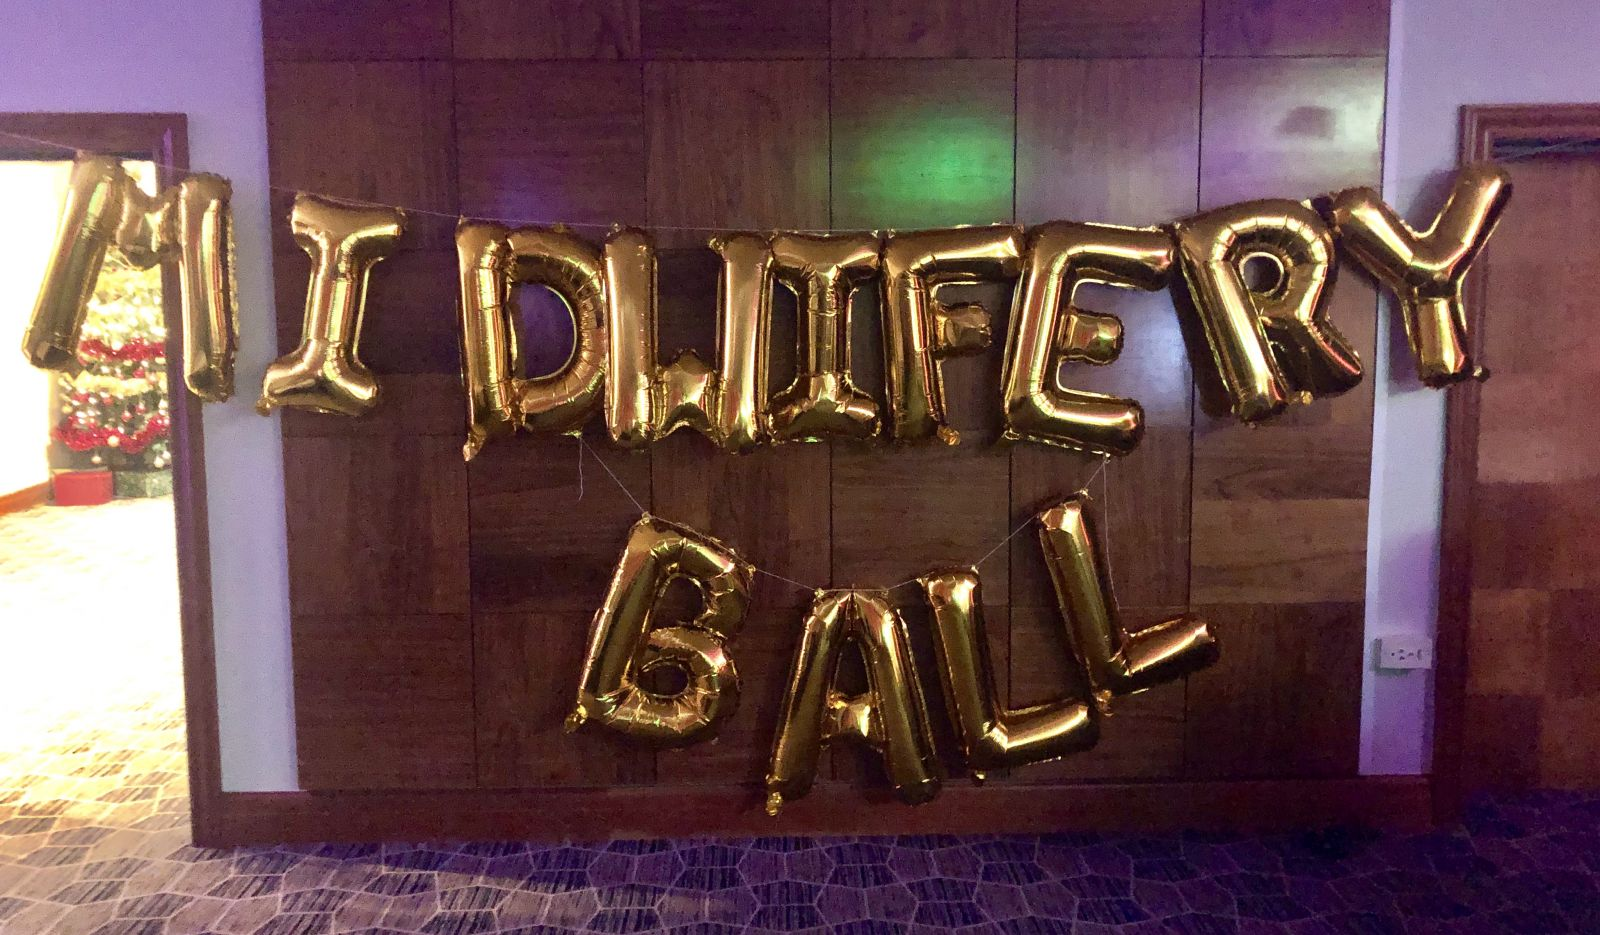 Midwife Mondays 115: Final shift before Christmas, and the Midwifery Ball!